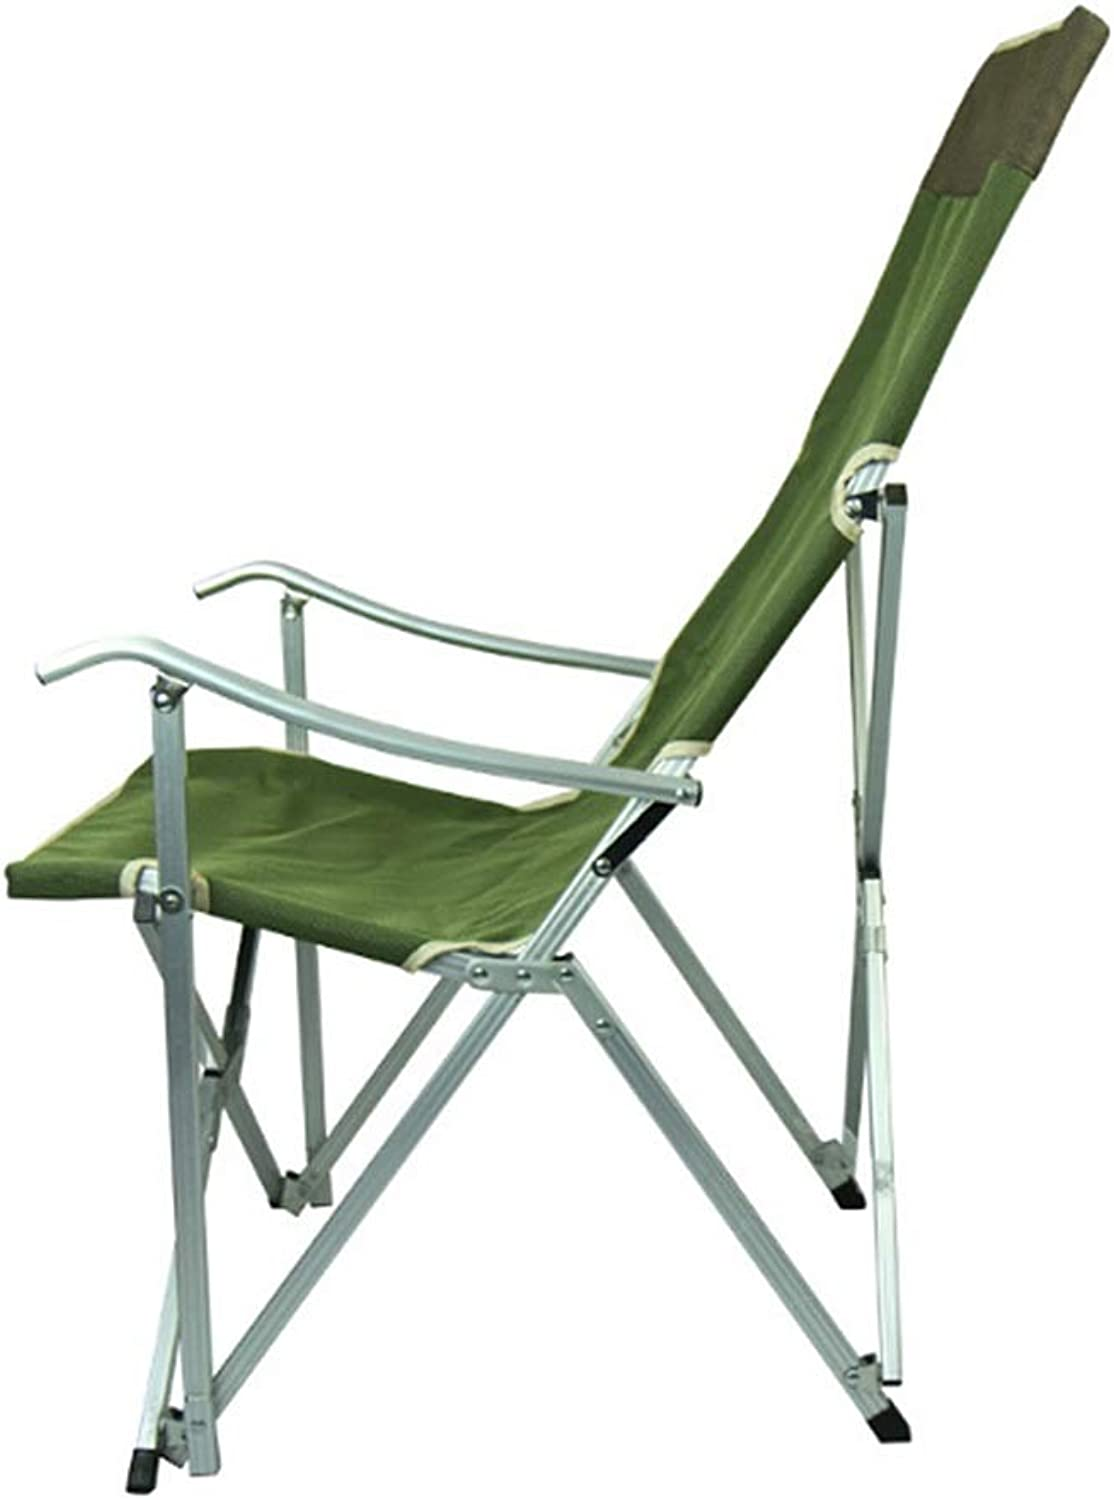 Folding Backrest Armrest Camping Fishing Beach Hiking Leisure Chair for Outdoor Use,Versatility (color   Army Green)